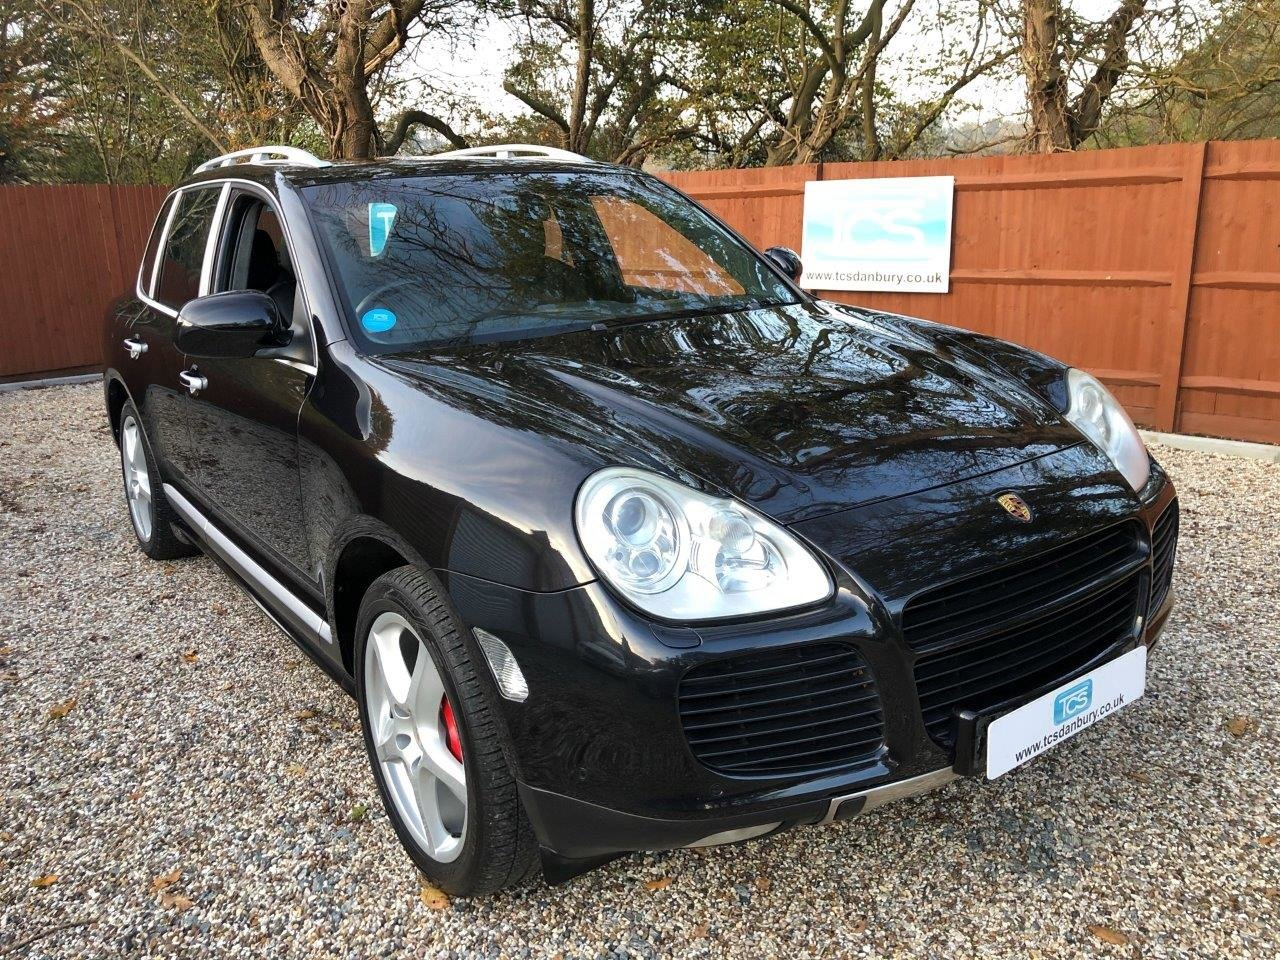 2005 Porsche Cayenne Turbo 4.5i V8 Tiptronic-S 450bhp 620NM torq For Sale (picture 3 of 6)